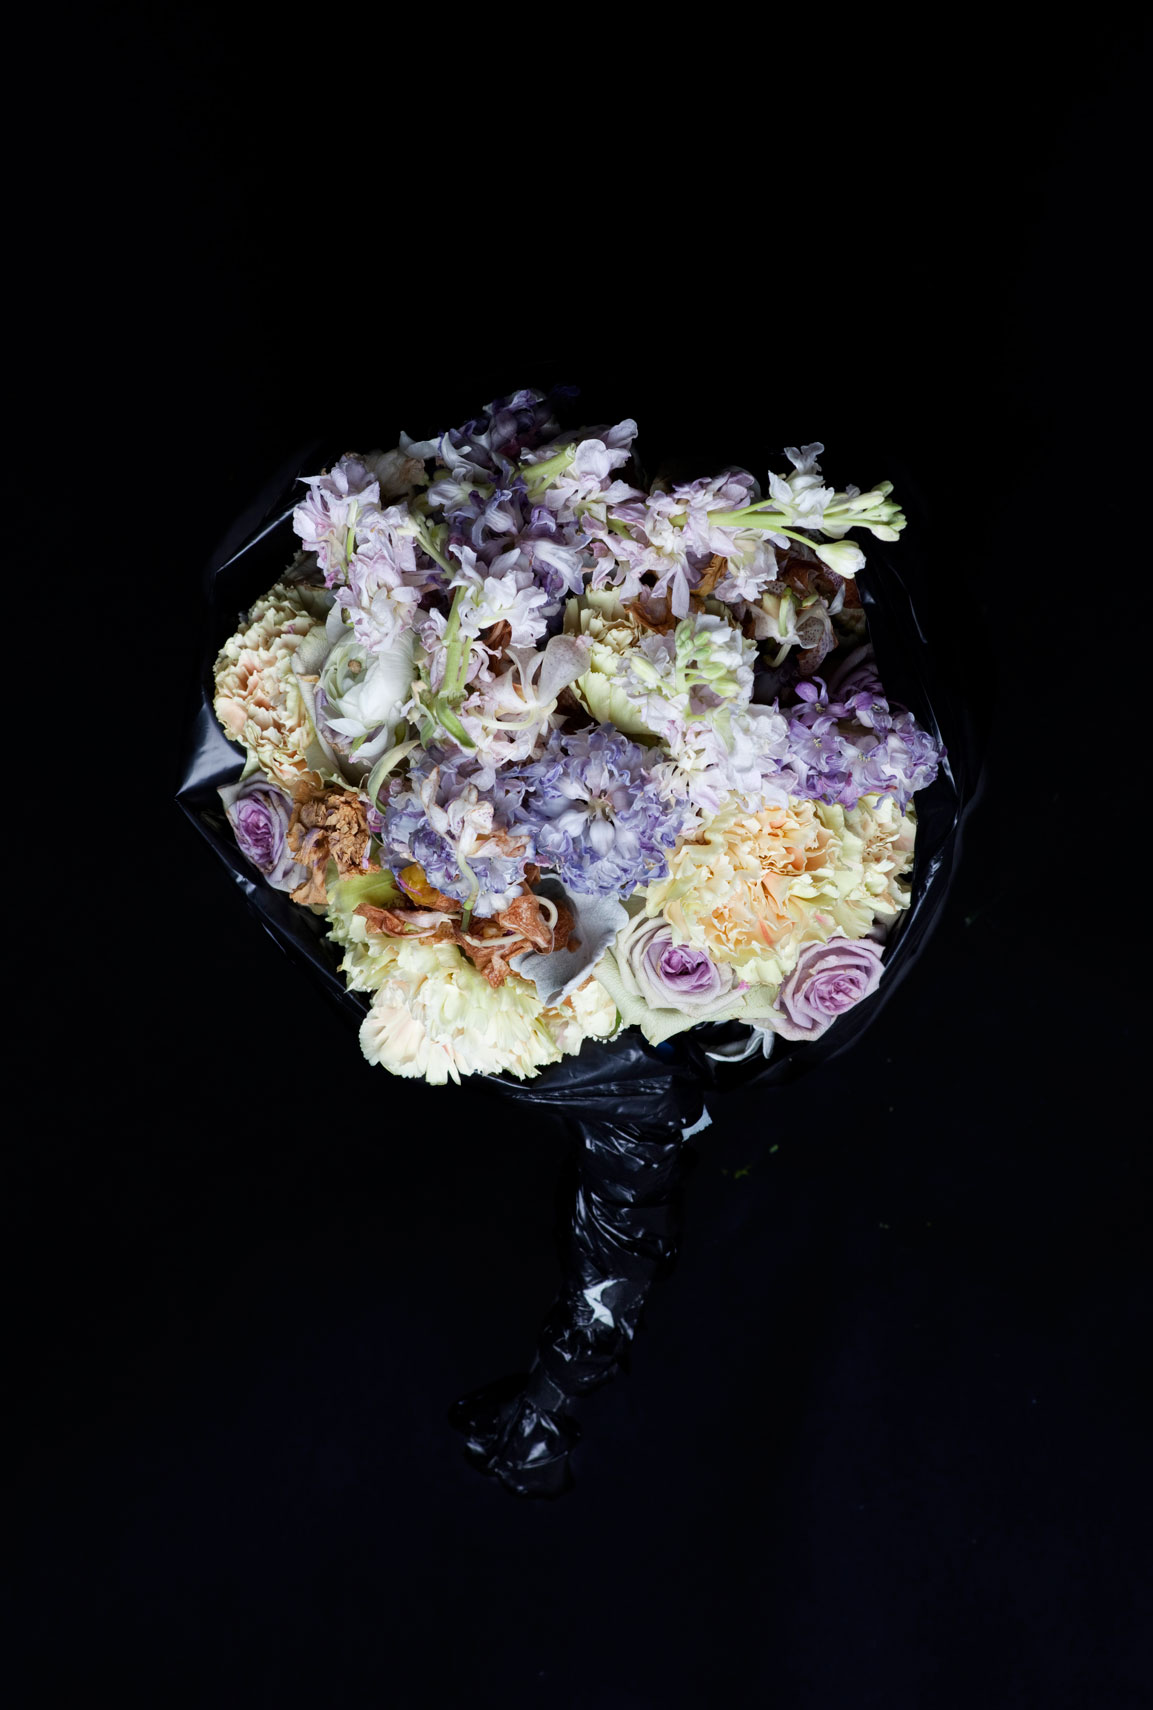 Fine art photography of white purple flowers zoe buckman fine art photography c print purple roses and white flower bouquet against black background izmirmasajfo